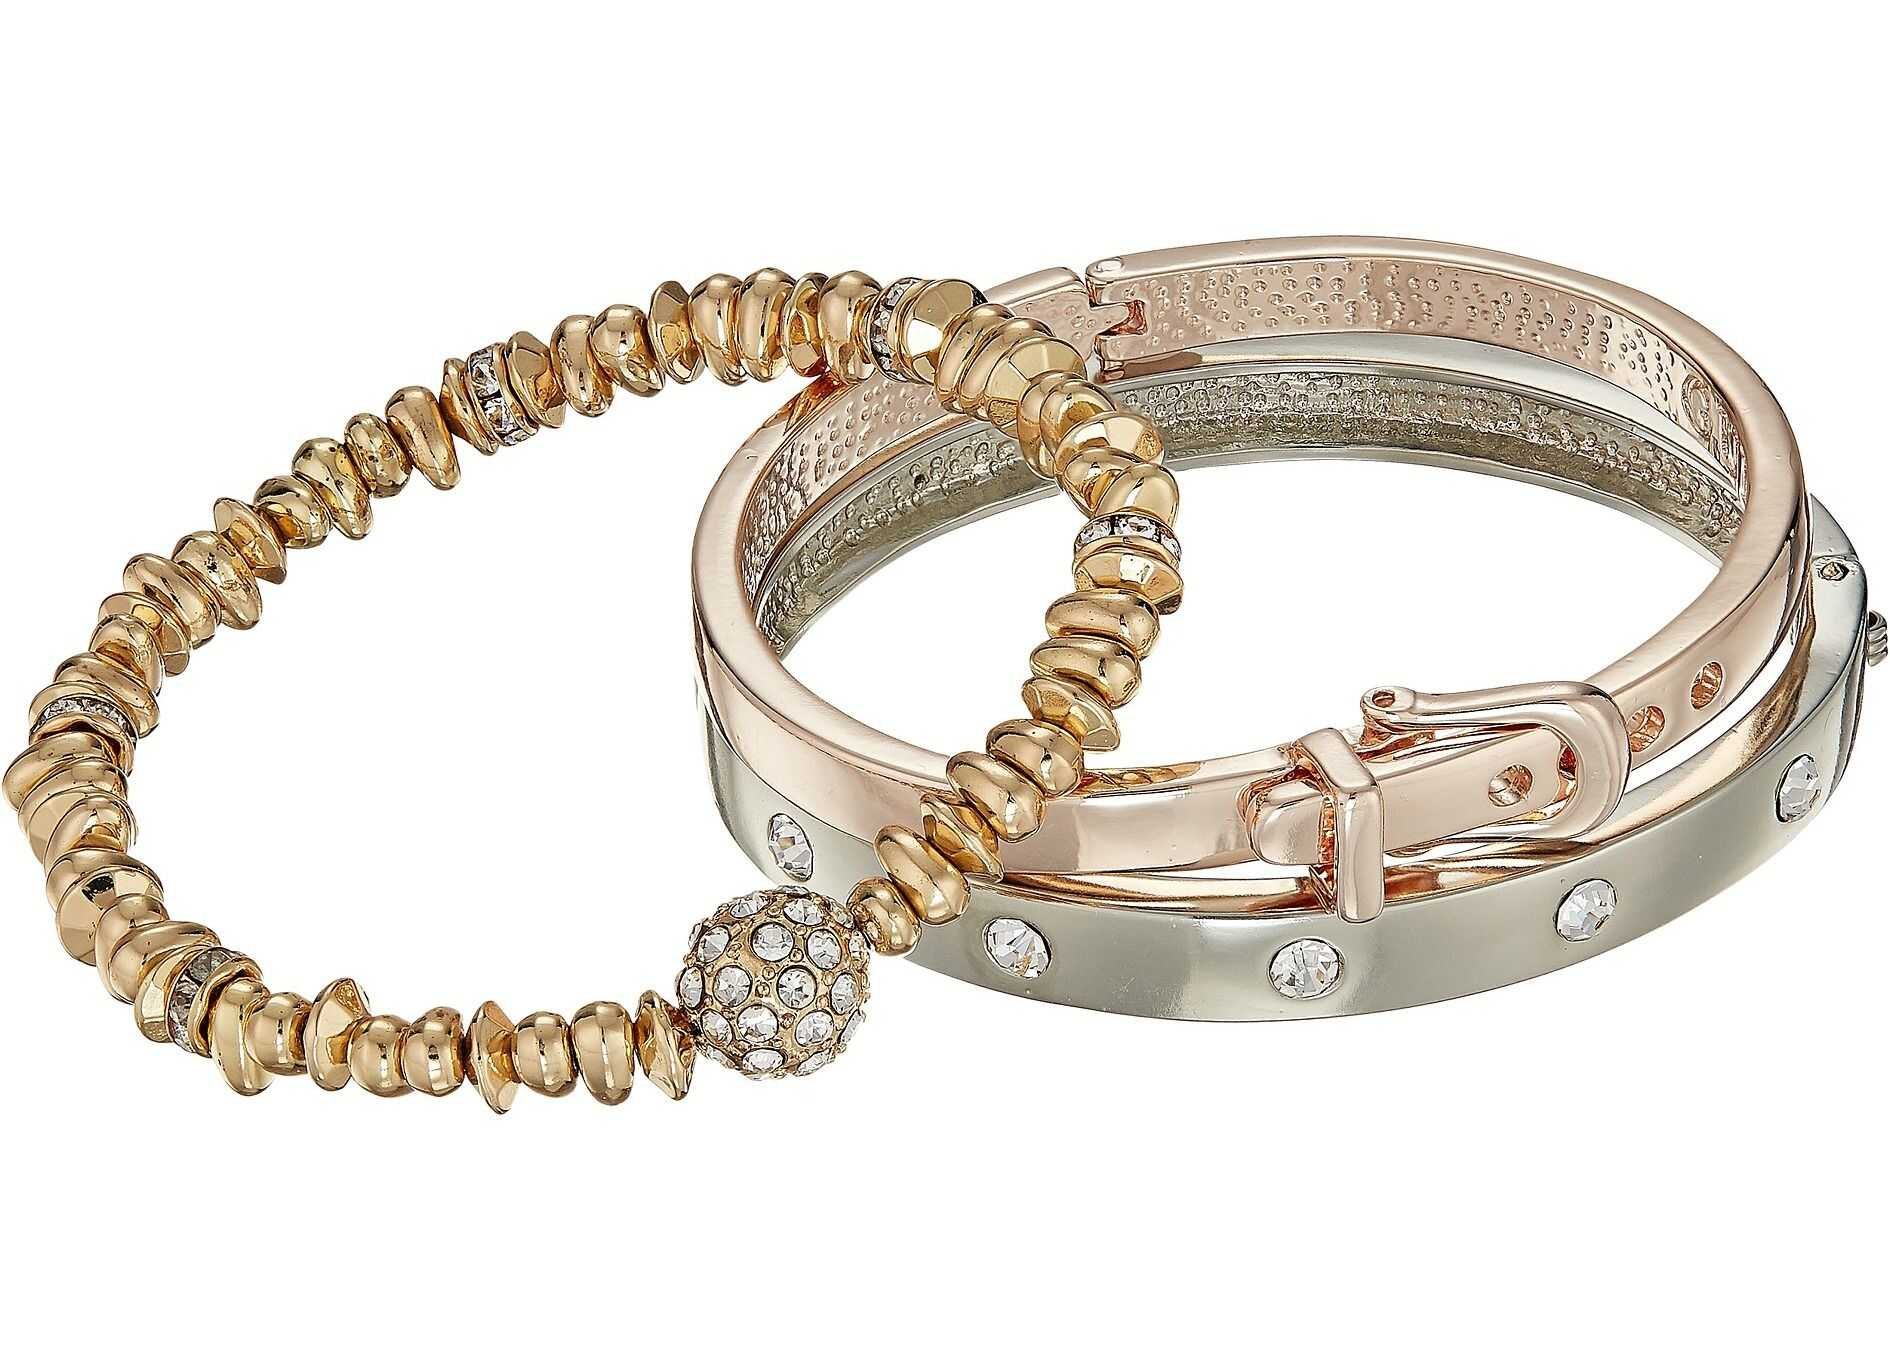 GUESS Three-Piece Bracelet Set - Two Hinge Bangles and One Stretch Silver/Rose Gold/Gold/Crystal